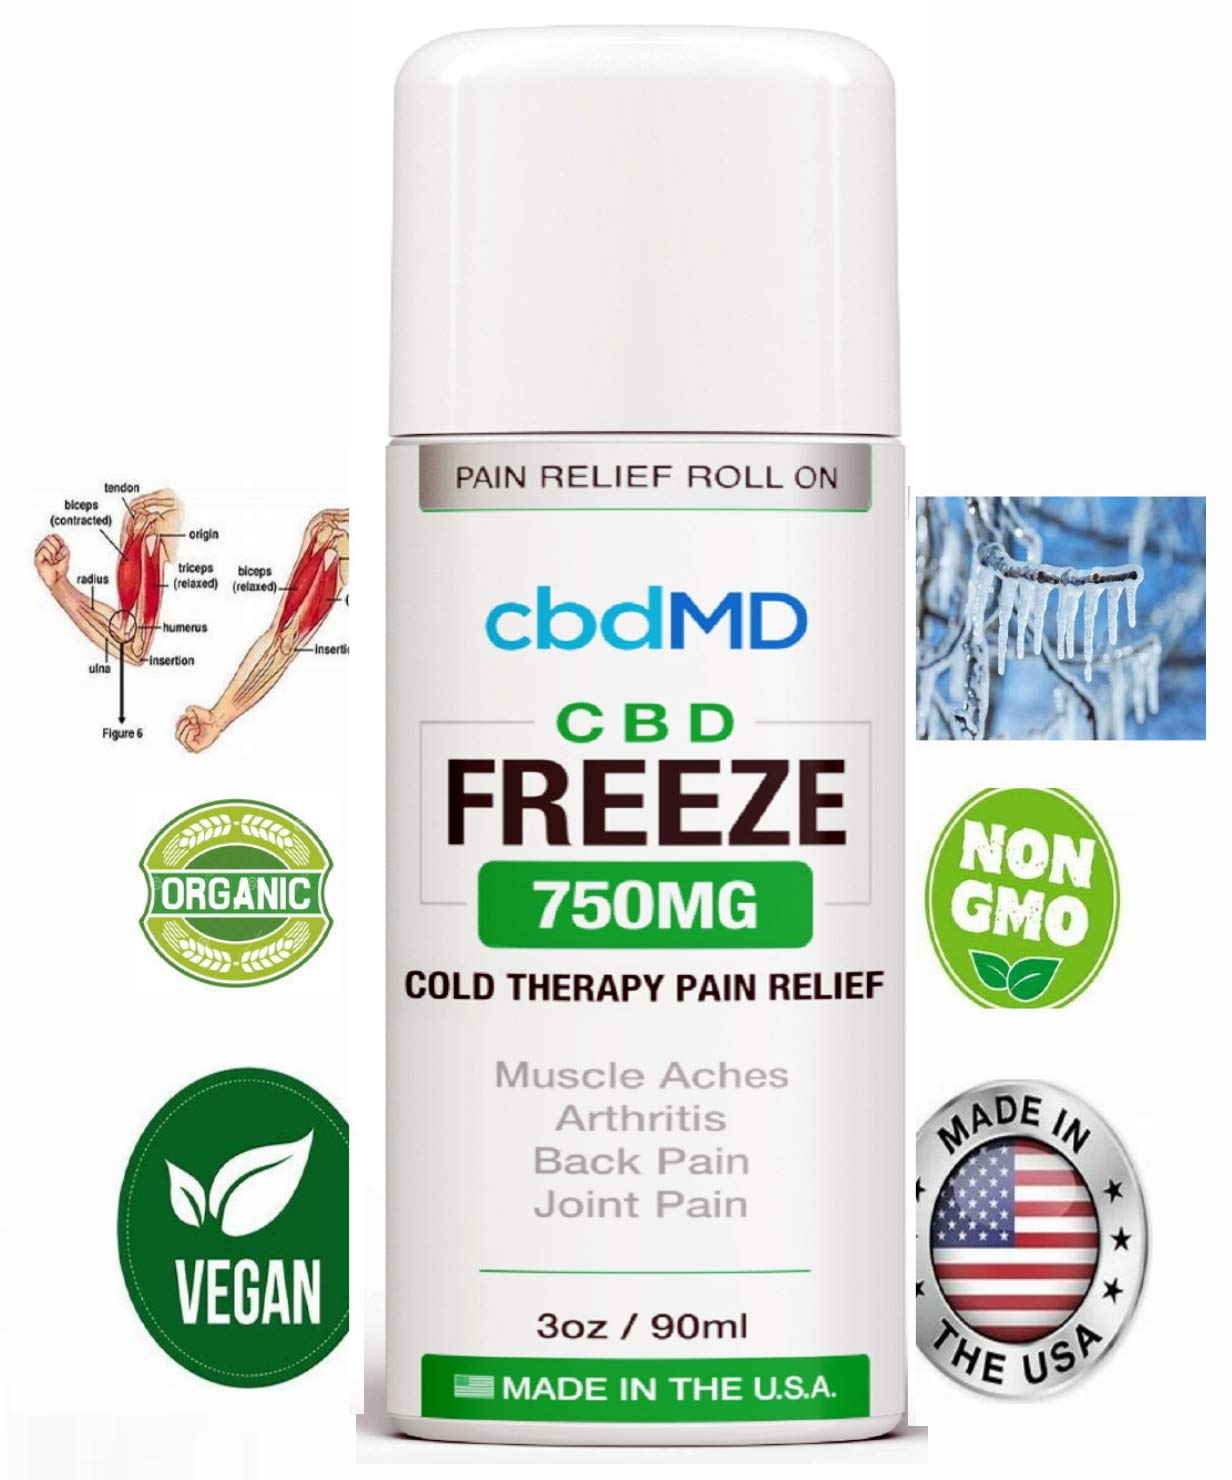 750mg 3oz Pure Freeze ROLL ON Pain Relief Cold Topical Therapy Gel Lotion Organic Vegan Arthritis Back AID USA Grown Gluten Free Non GMO Joint Pain Hemp